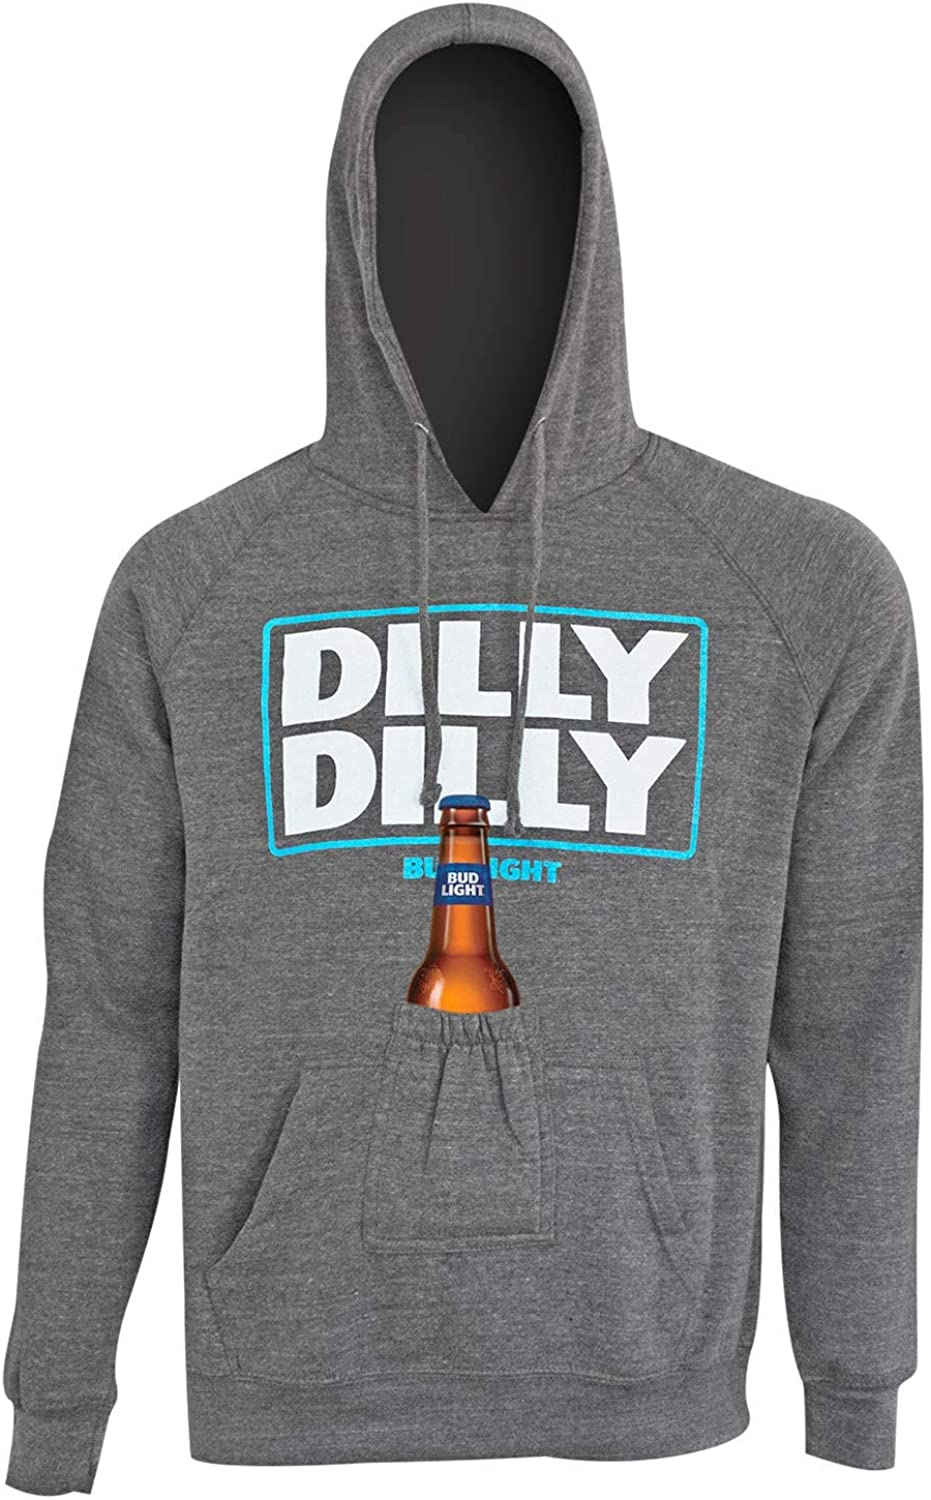 174387cdd0 Bud Light Dilly Dilly Dilly Dilly Beer Pouch Hoodie 96654b - yici ...